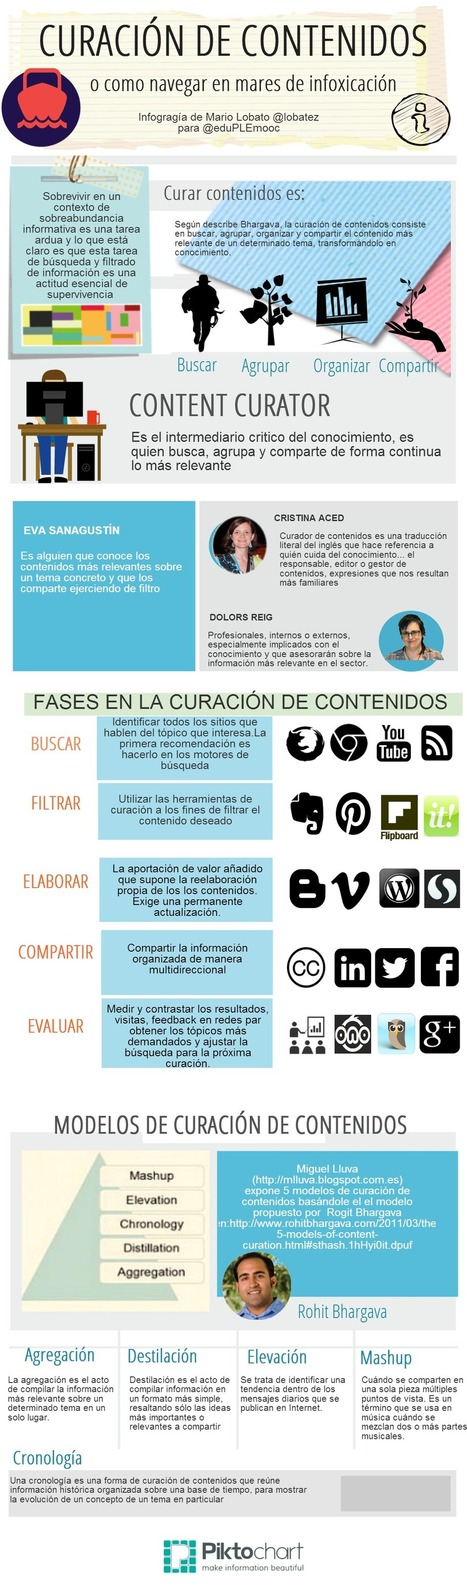 Curación de contenidos: no te ahogues en mares de infoxicación #infografia #infographic #marketing | Aprenentatge en xarxa | Scoop.it